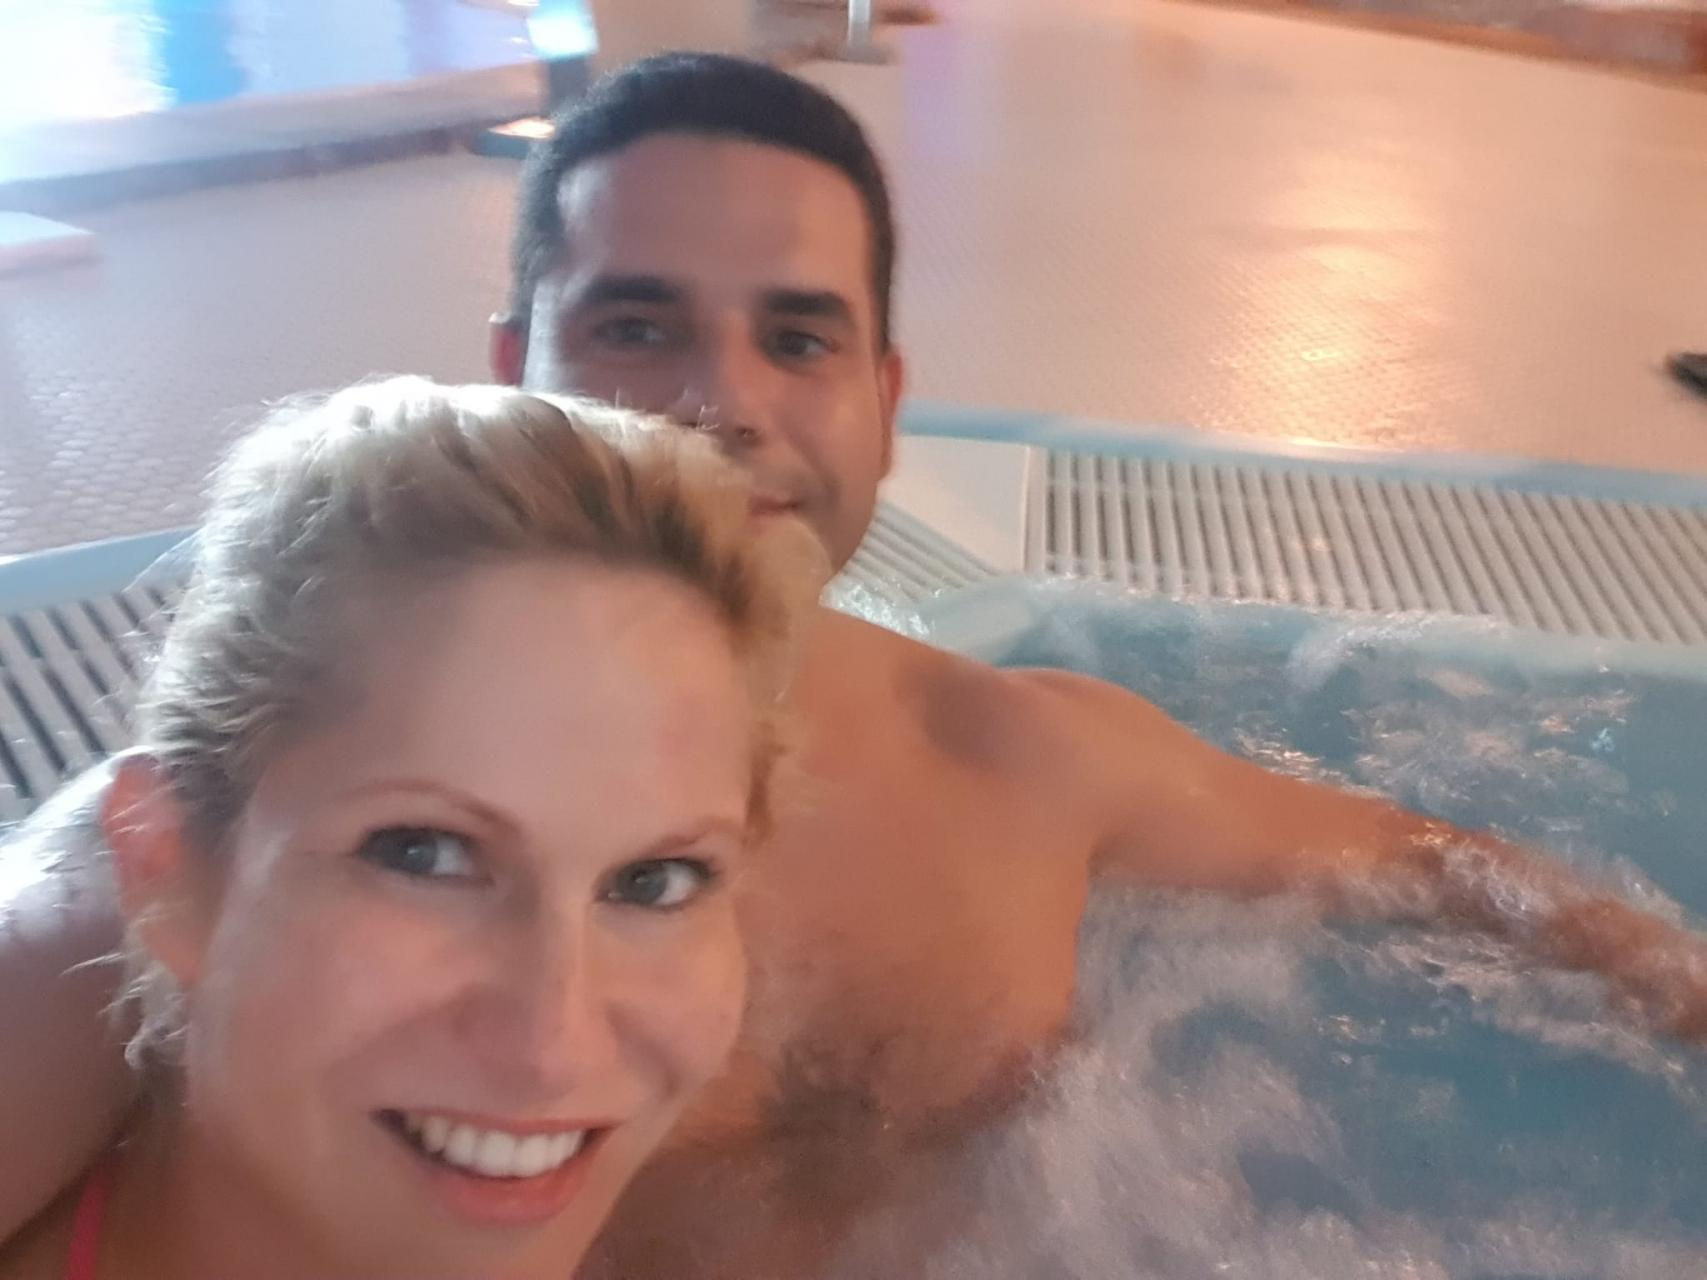 We definitely look stressed in the jacuzzi, don't we?